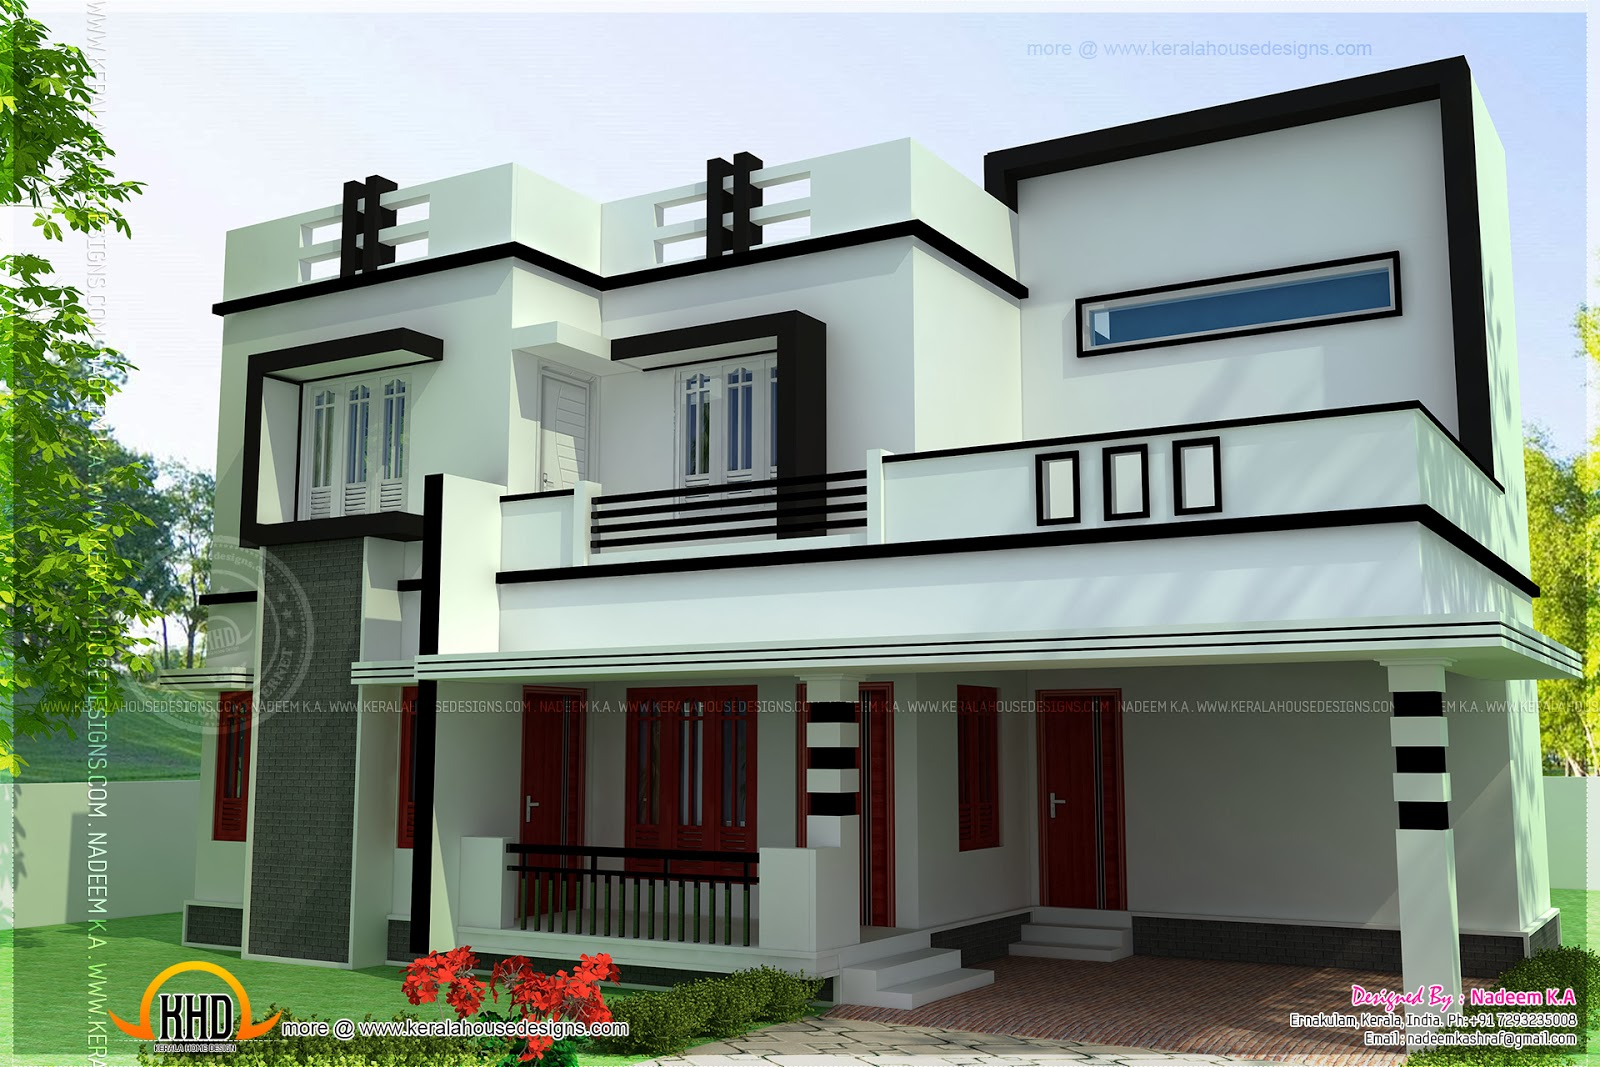 Flat roof 4 bedroom modern house kerala home design and for Modern 3 bedroom house design